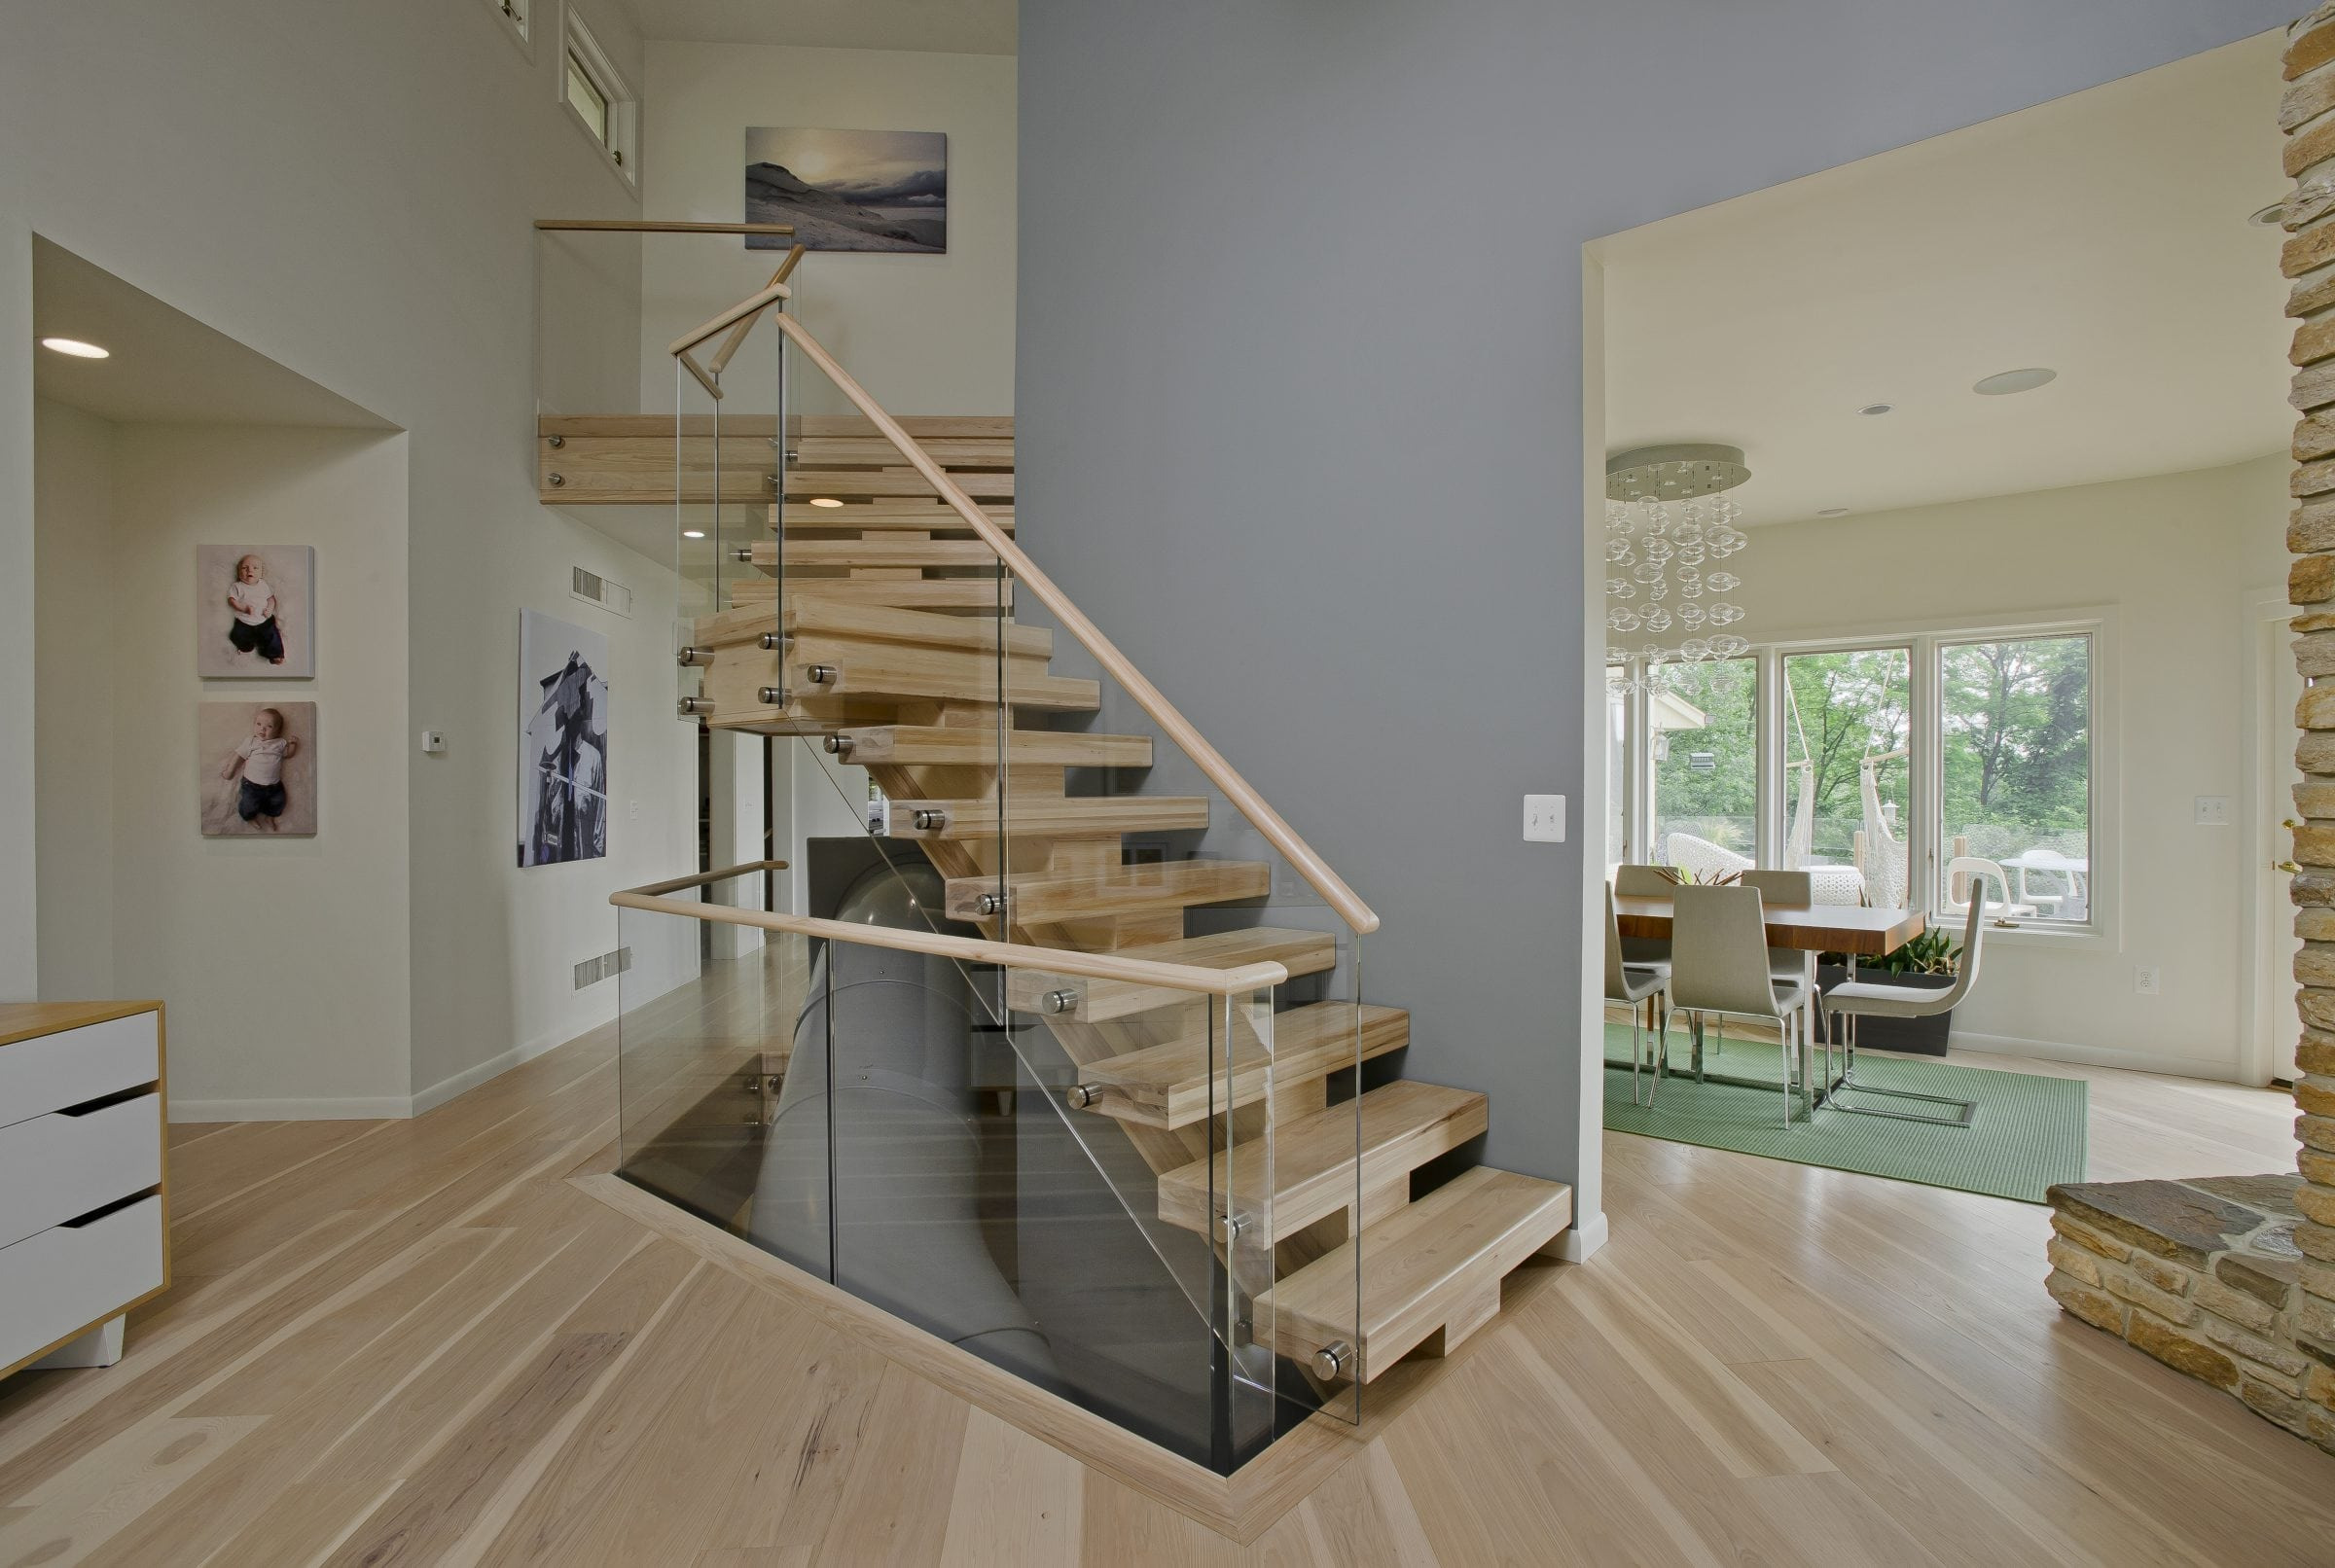 Contemporary floating staircase with glass railing